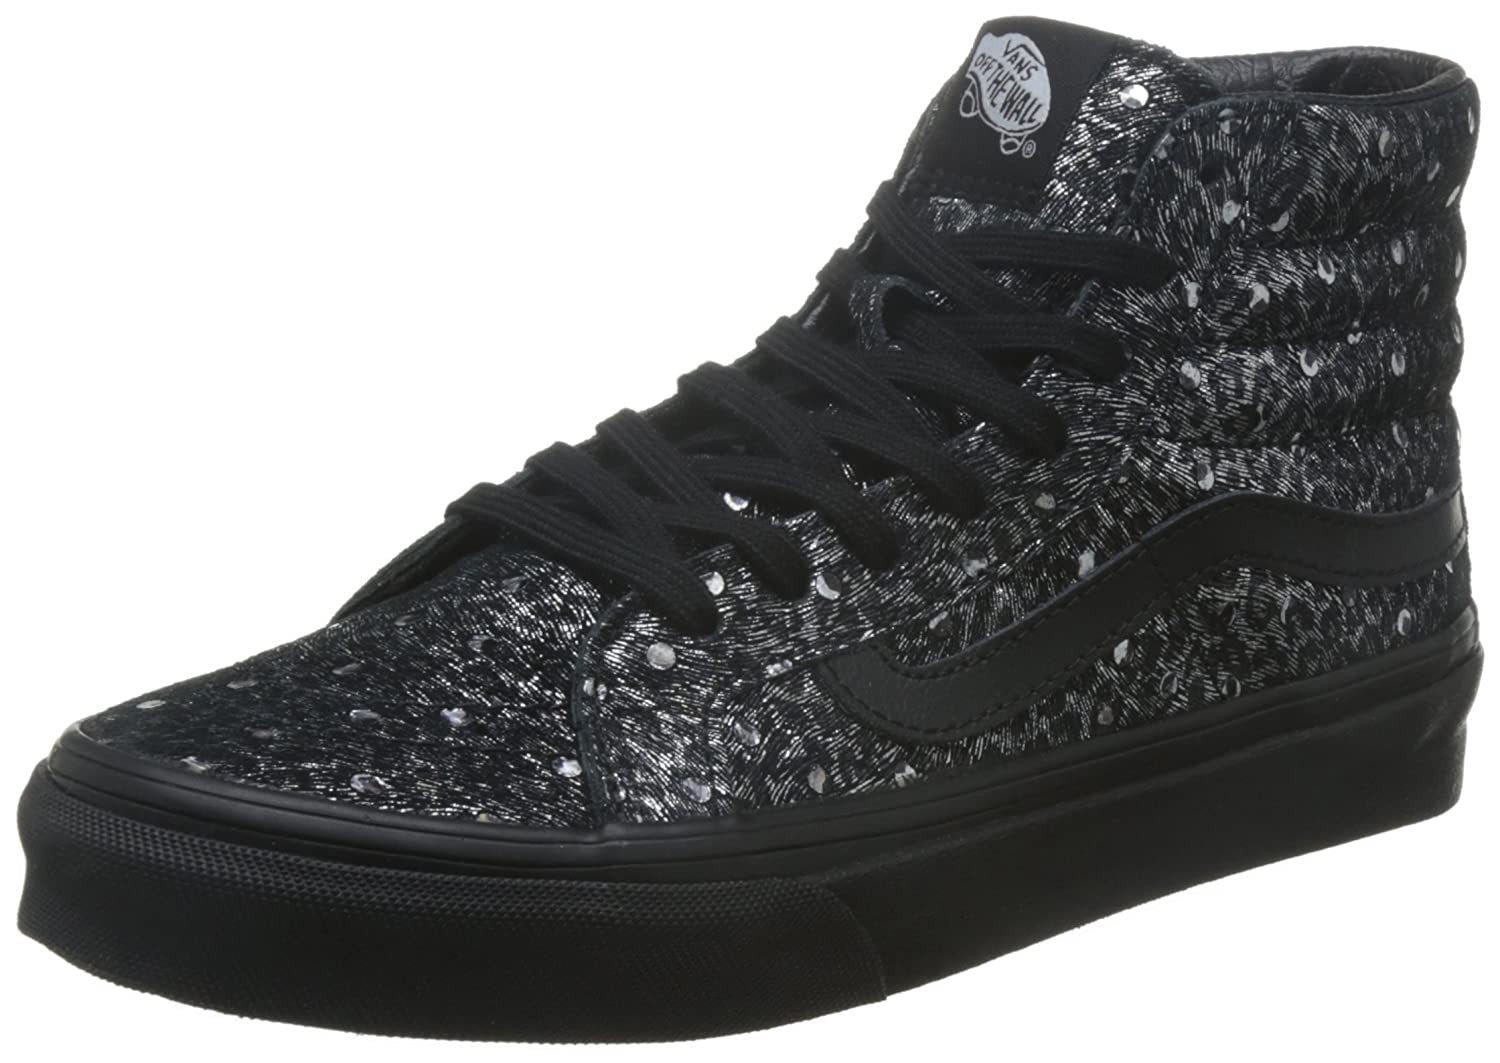 Vans Unisex SK8-Hi Slim Sneaker B011PM1ZVE 8.5 M US Women / 7 M US Men|Black